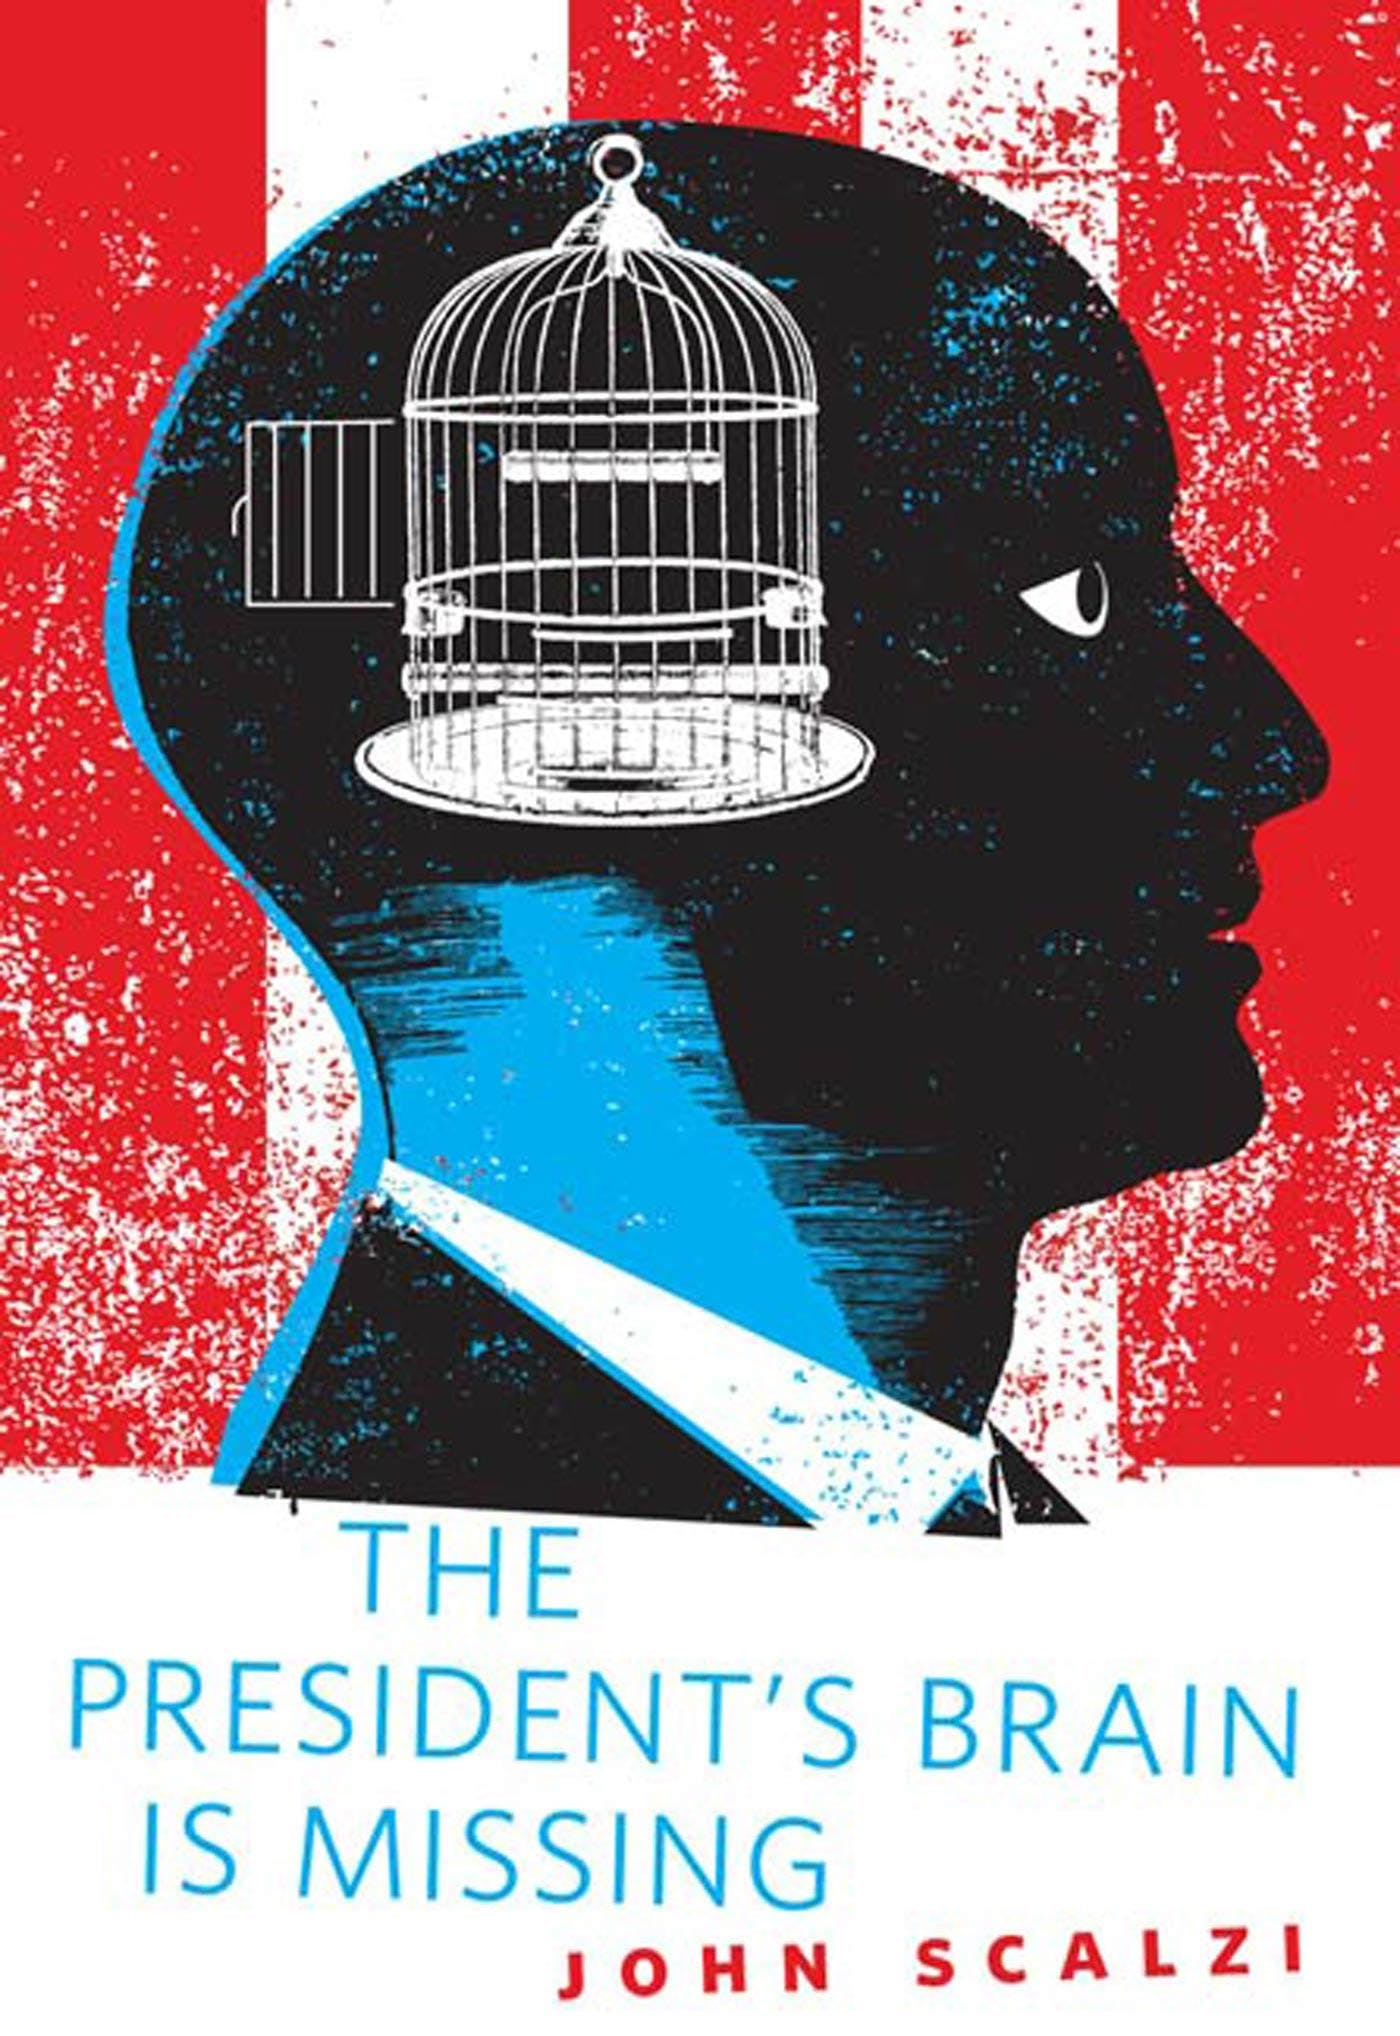 Image of The President's Brain is Missing